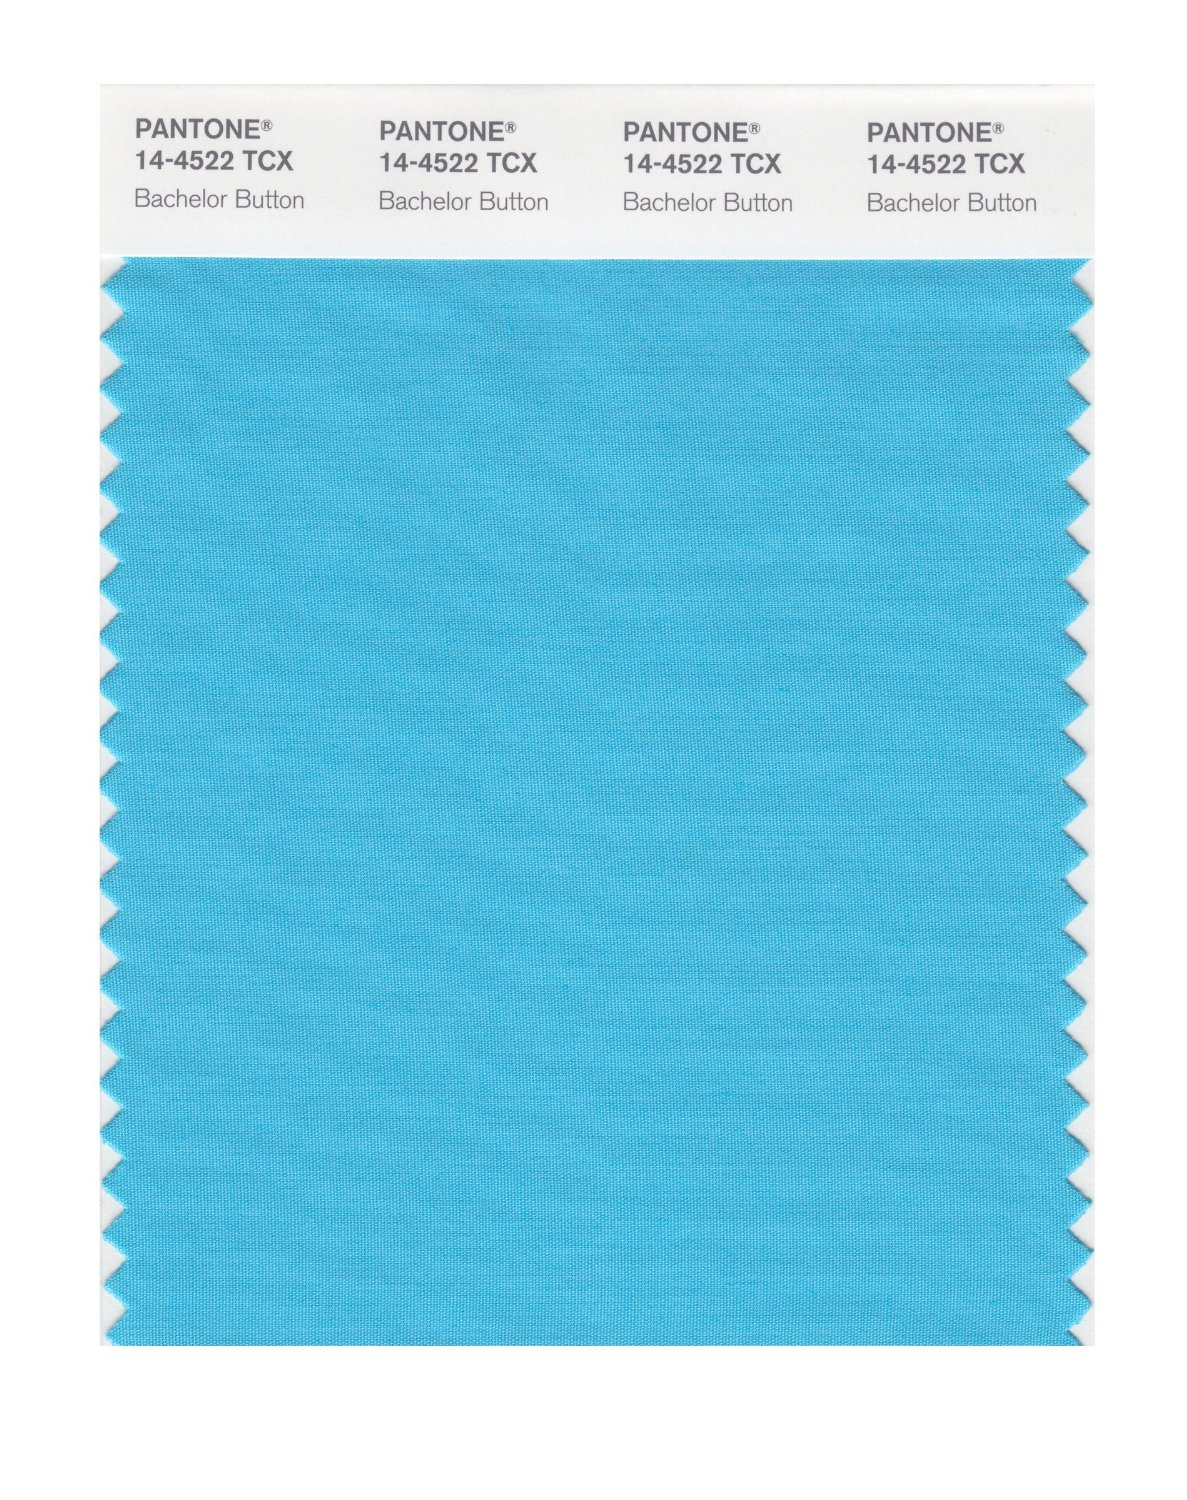 Pantone Smart Swatch 14-4522 Bachelor Button